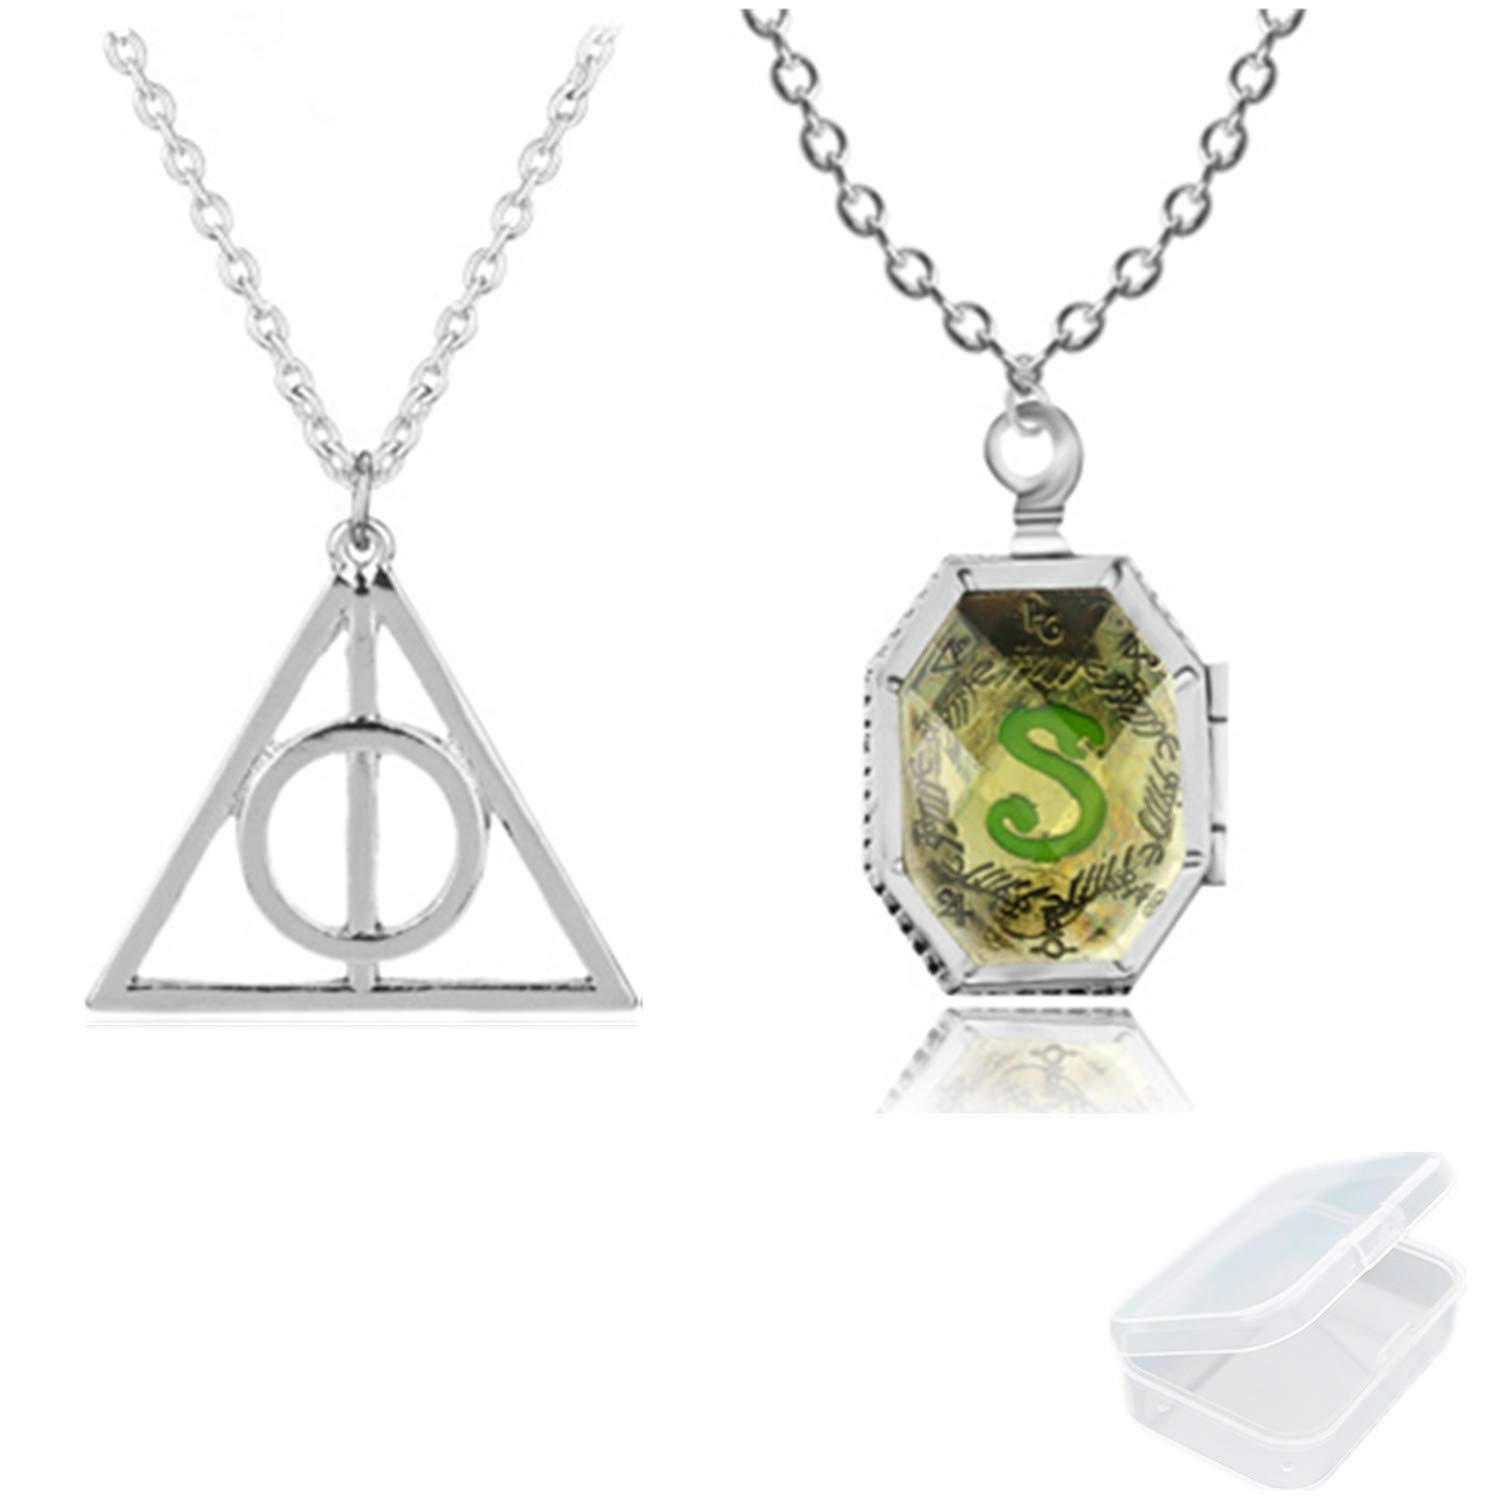 PPX 2 Pieces of Harry Potter Locket Horcrux Necklace and Deathly Hallows Symbol Pendant Necklace Jewellery Set with Transparent Box